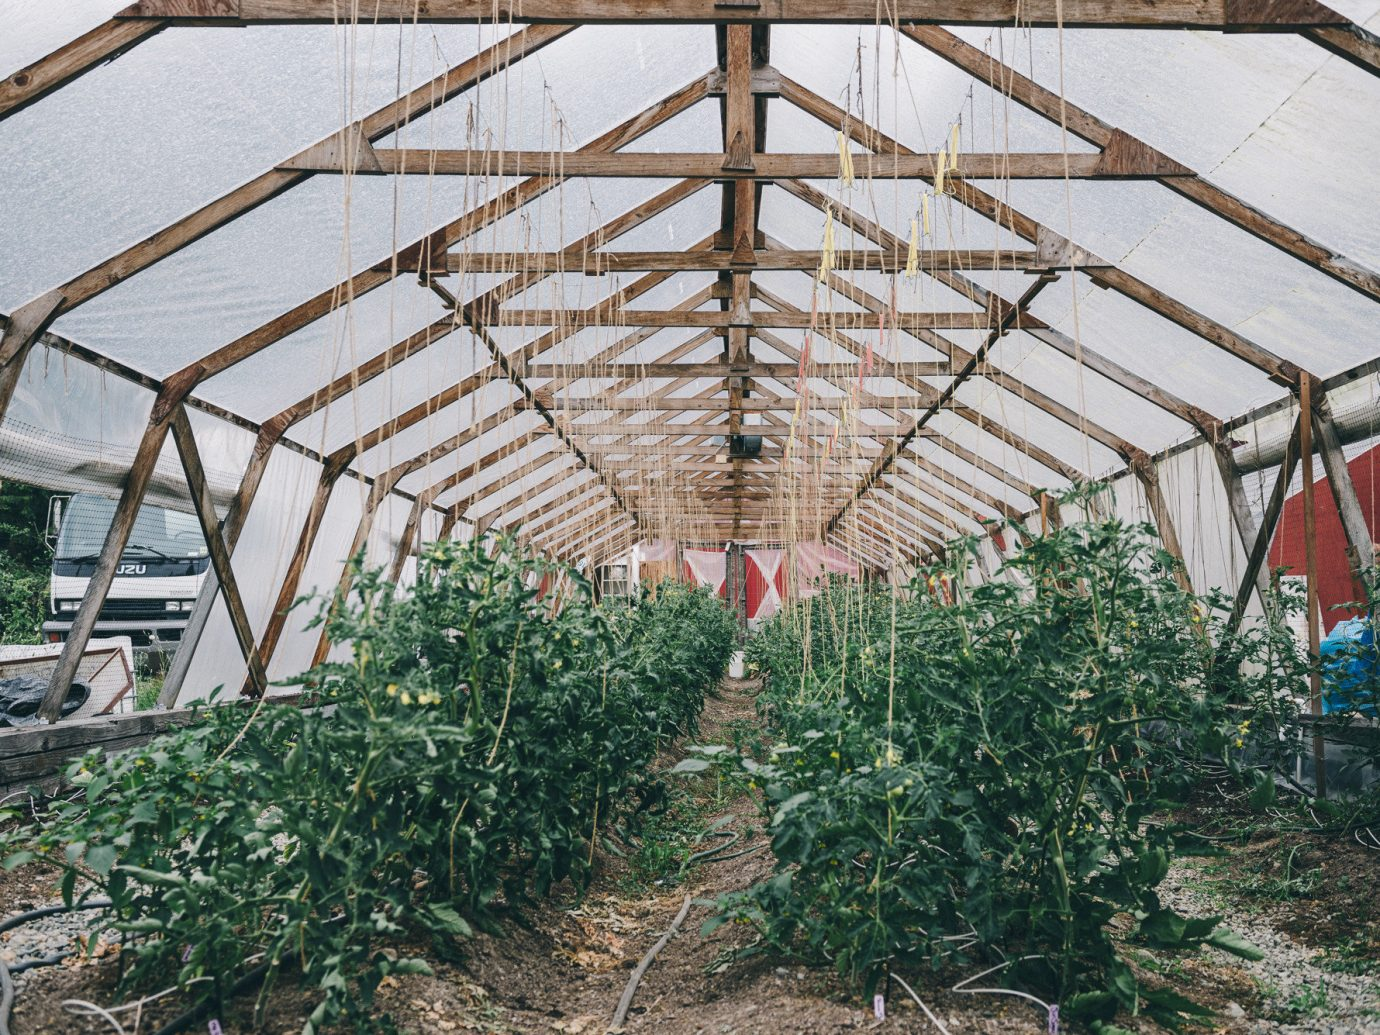 Food + Drink outdoor man made object greenhouse outdoor structure agriculture tool Farm Garden